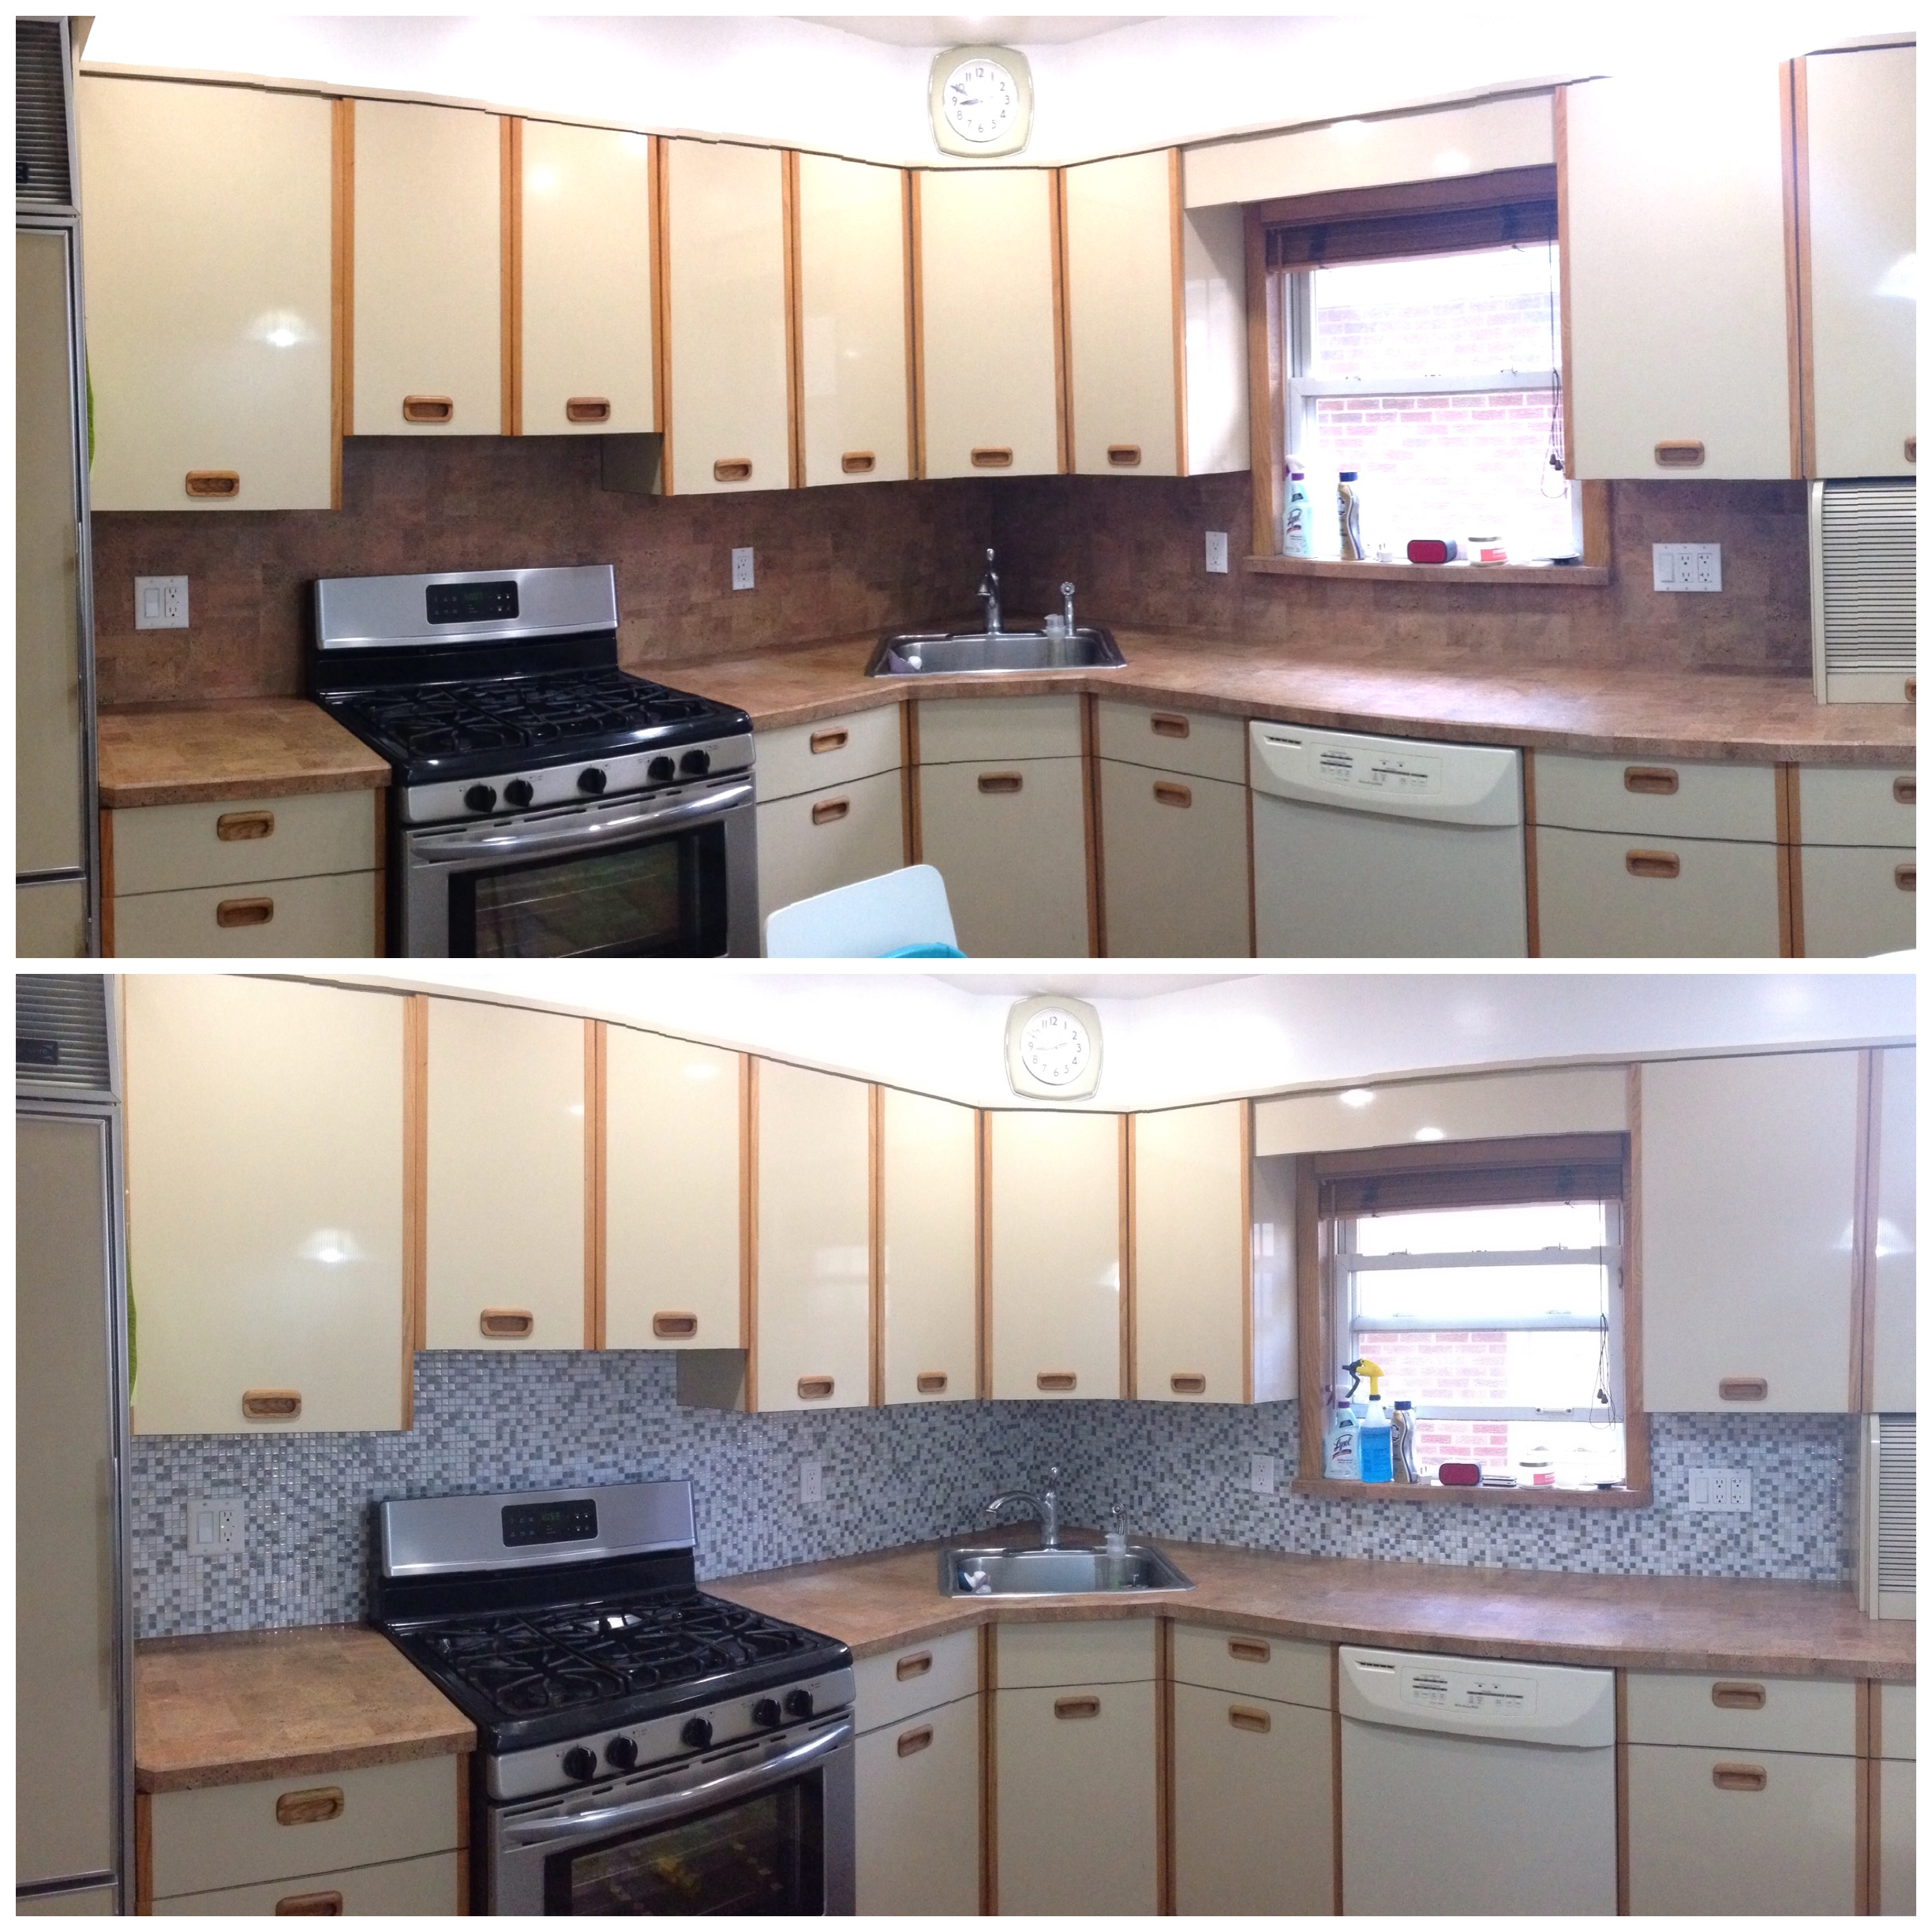 Kitchen Facelift Similiar Before And After Diy Bathroom Facelift Keywords